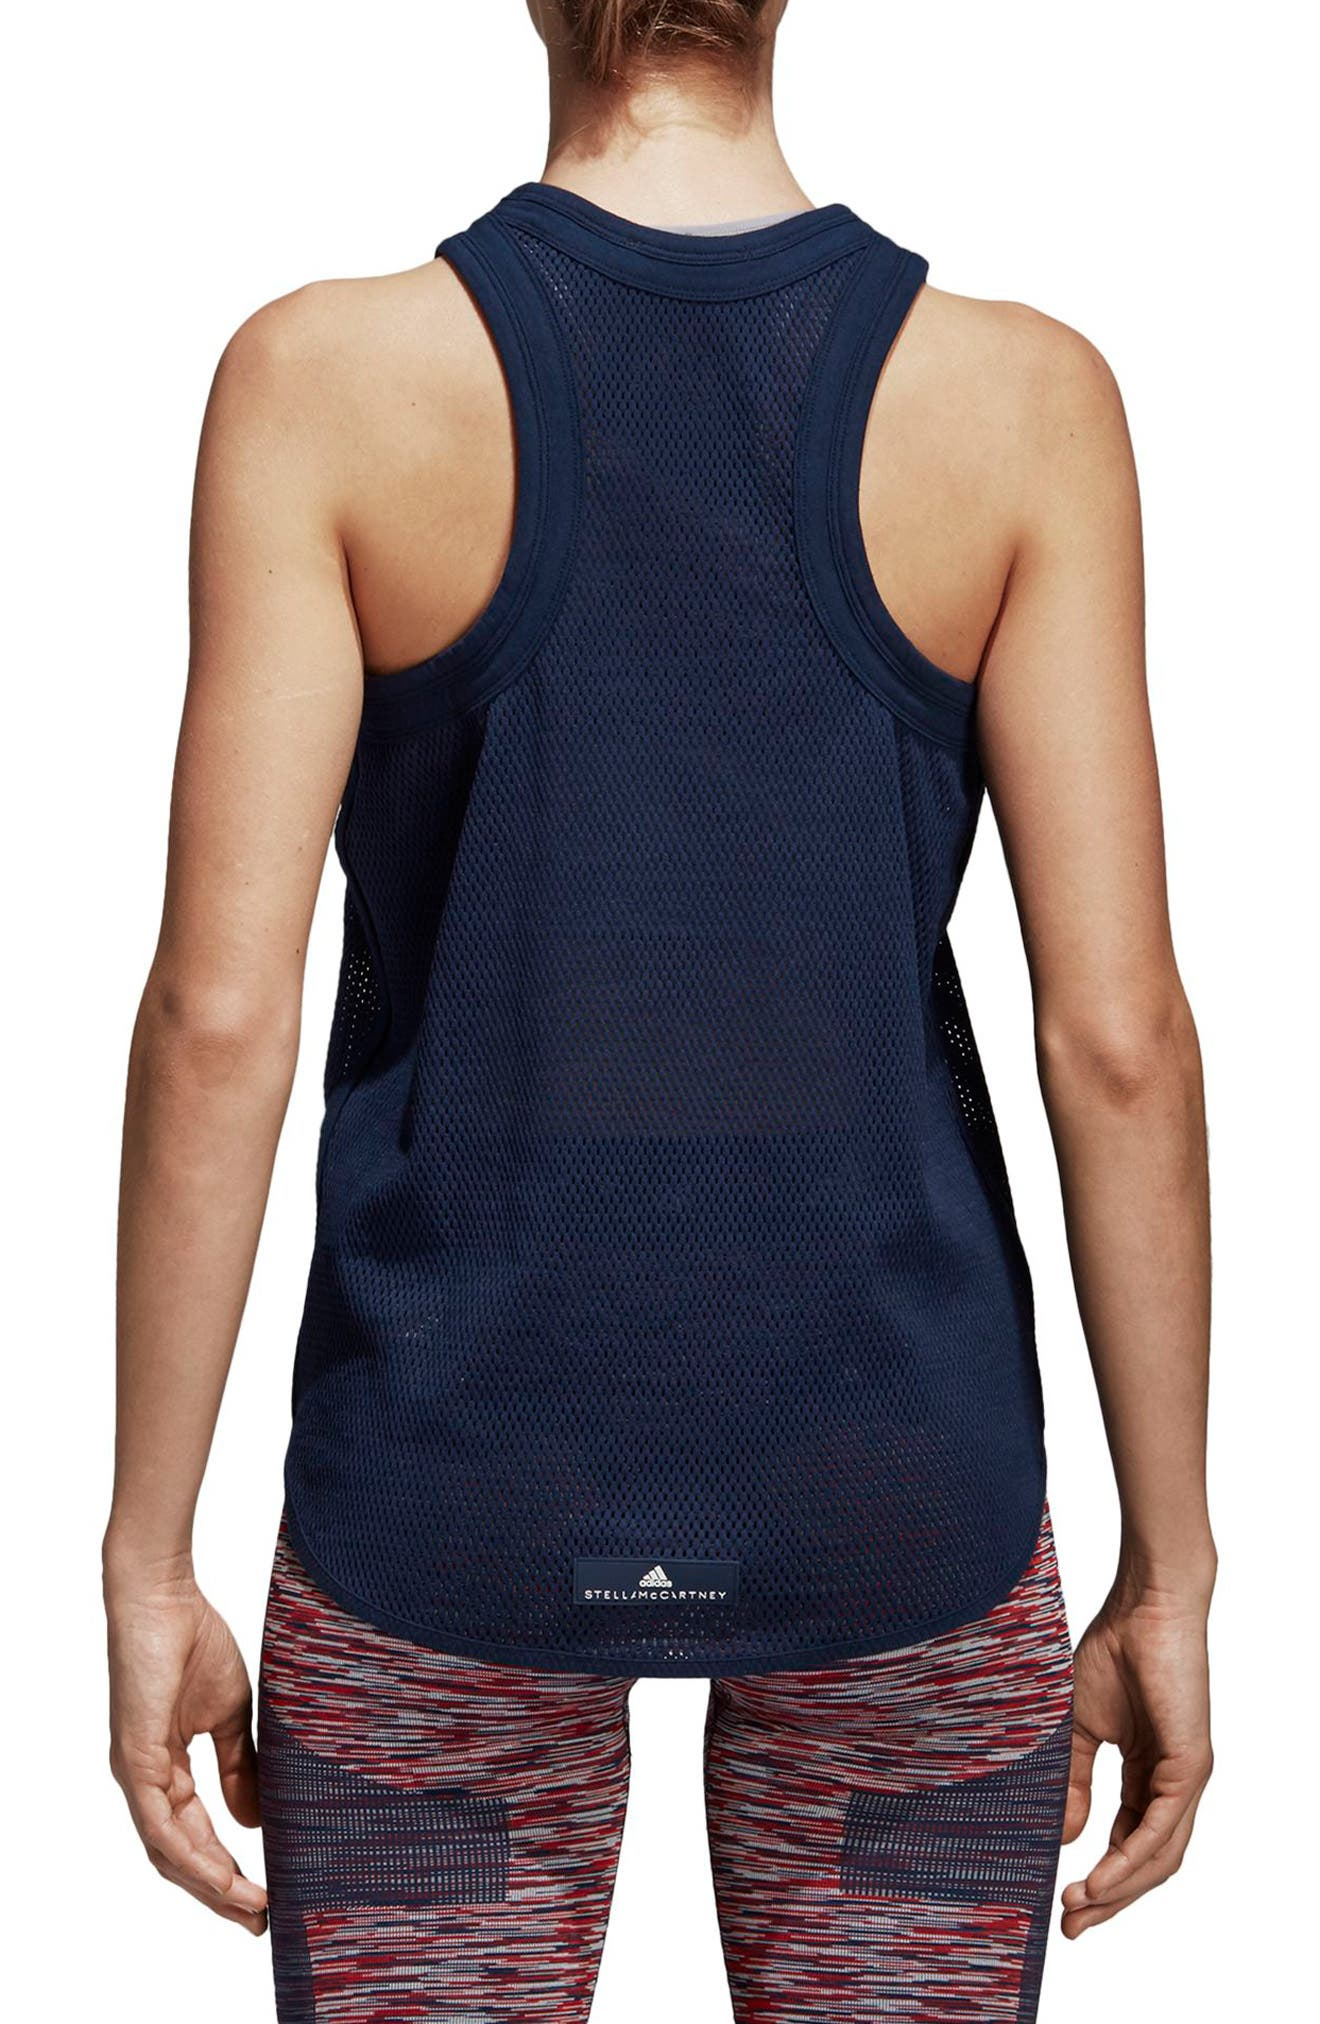 Yoga Mesh Tank,                             Alternate thumbnail 2, color,                             Collegiate Navy